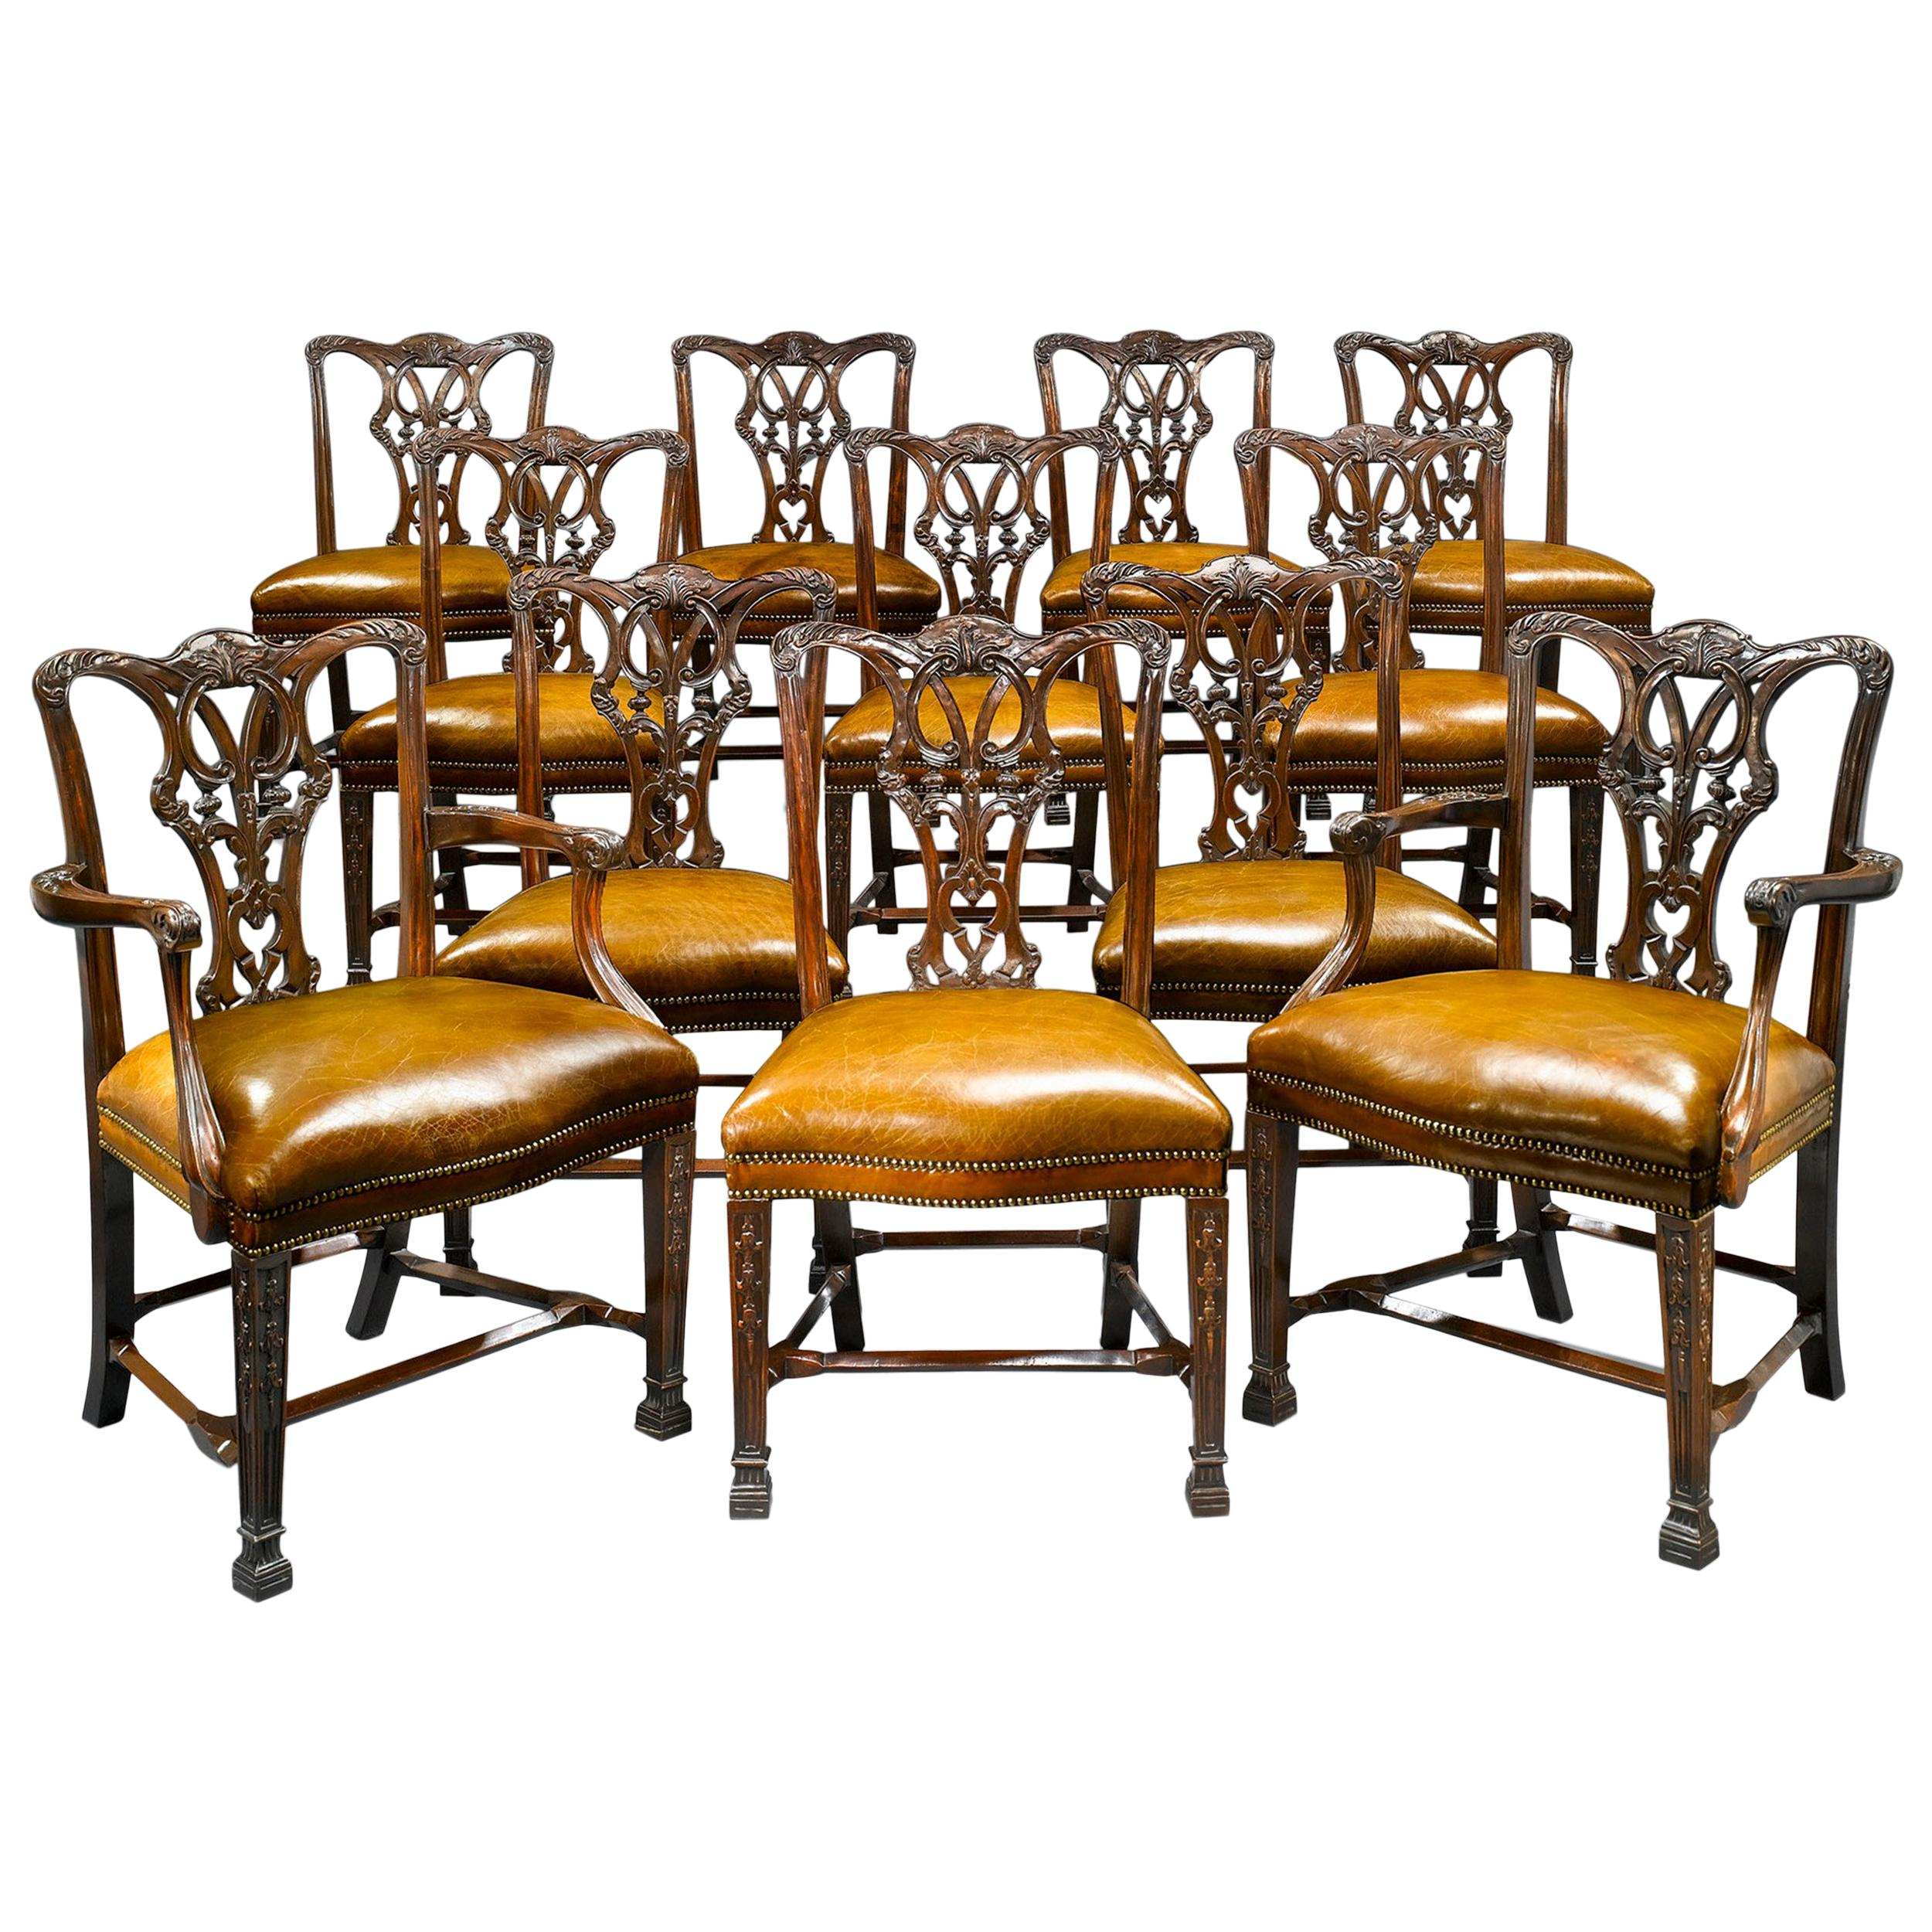 Chippendale-Style Mahogany Dining Chairs